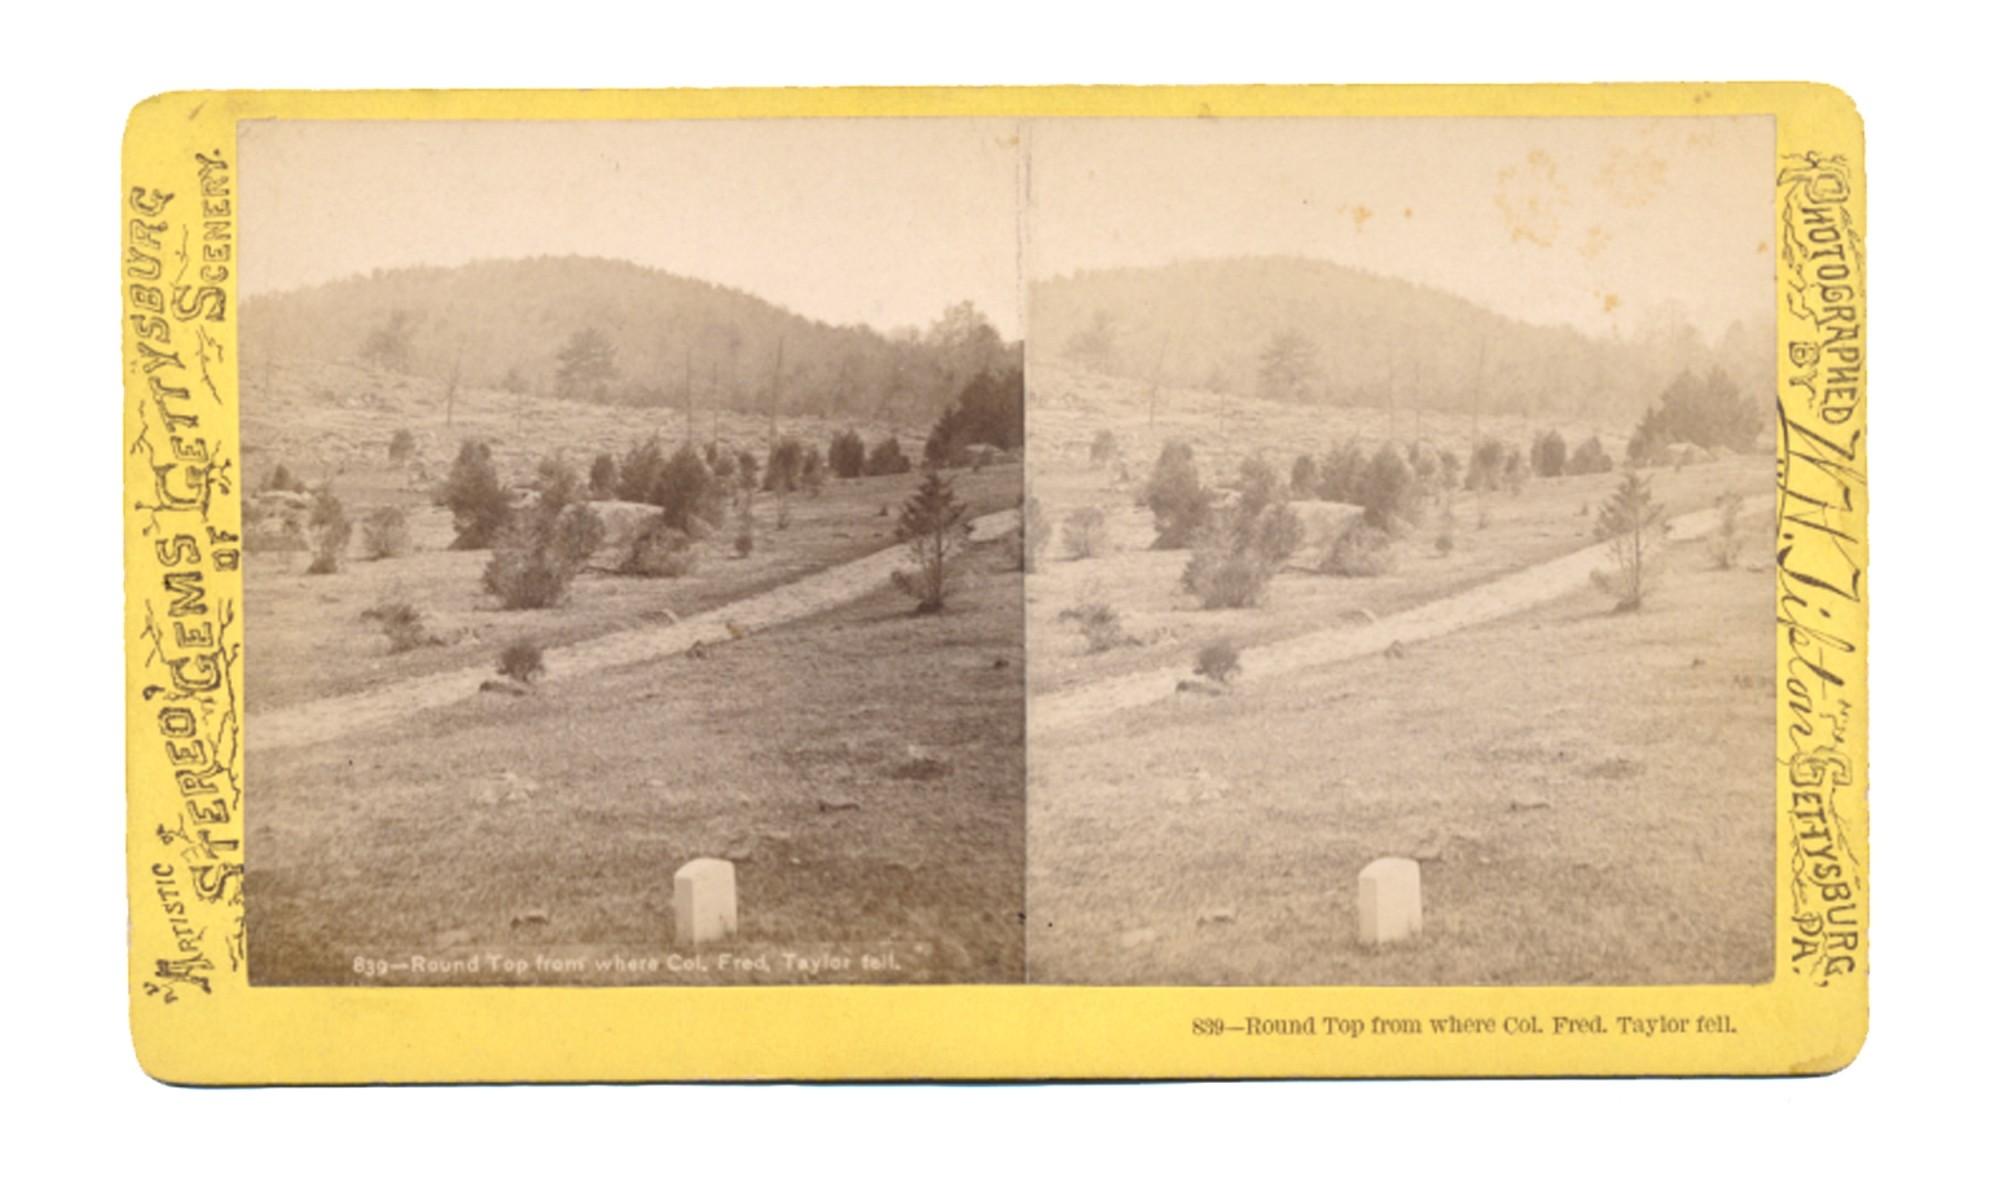 TIPTON STEREO OF BIG ROUND TOP & COL. TAYLOR MARKER